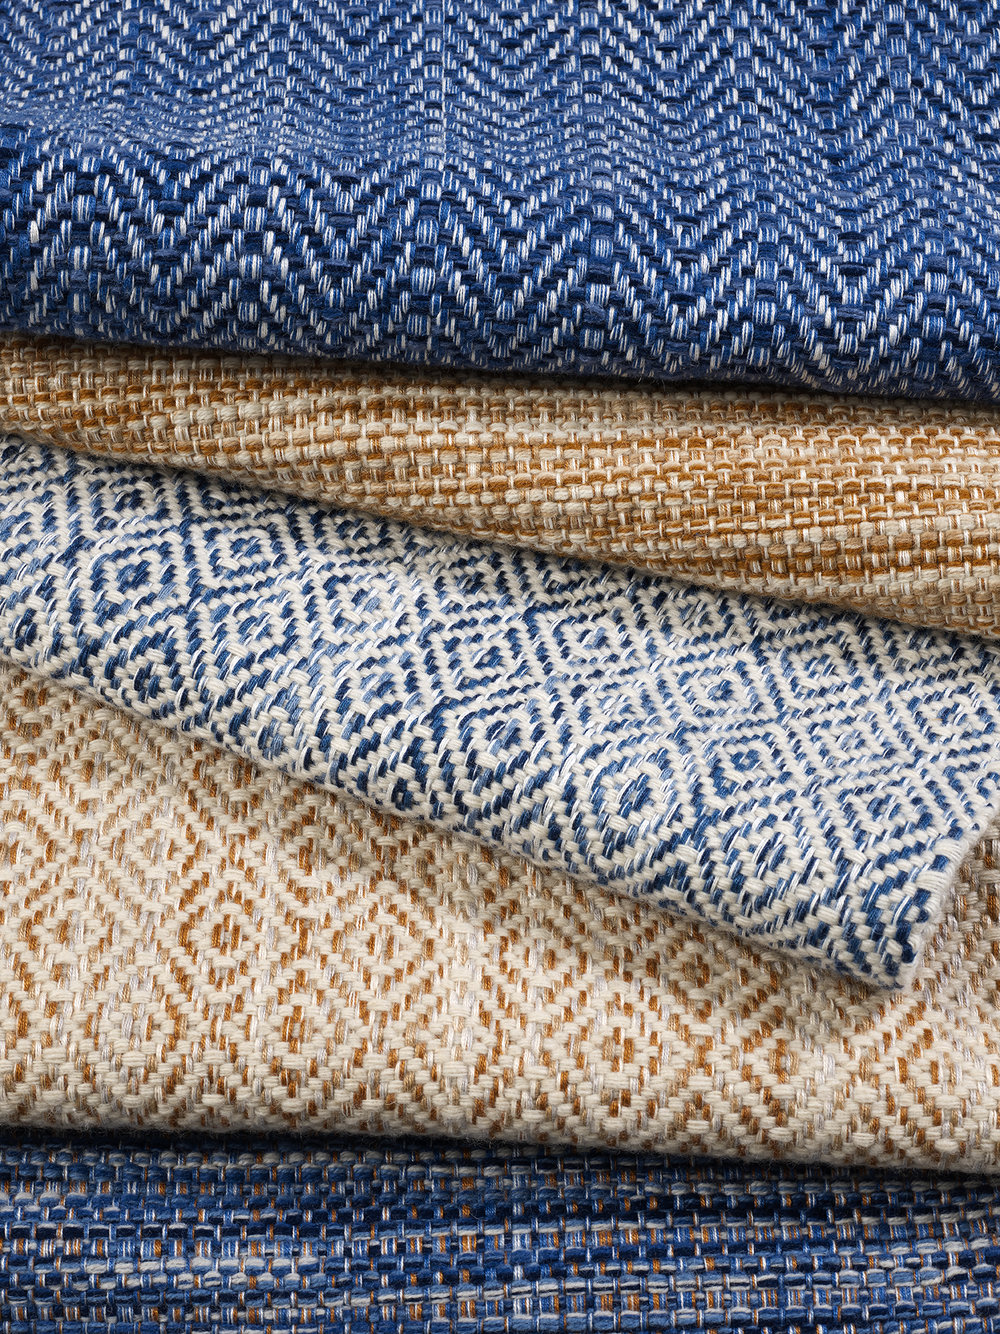 A stack of woven rugs in blue and orange with different geometric patterns.